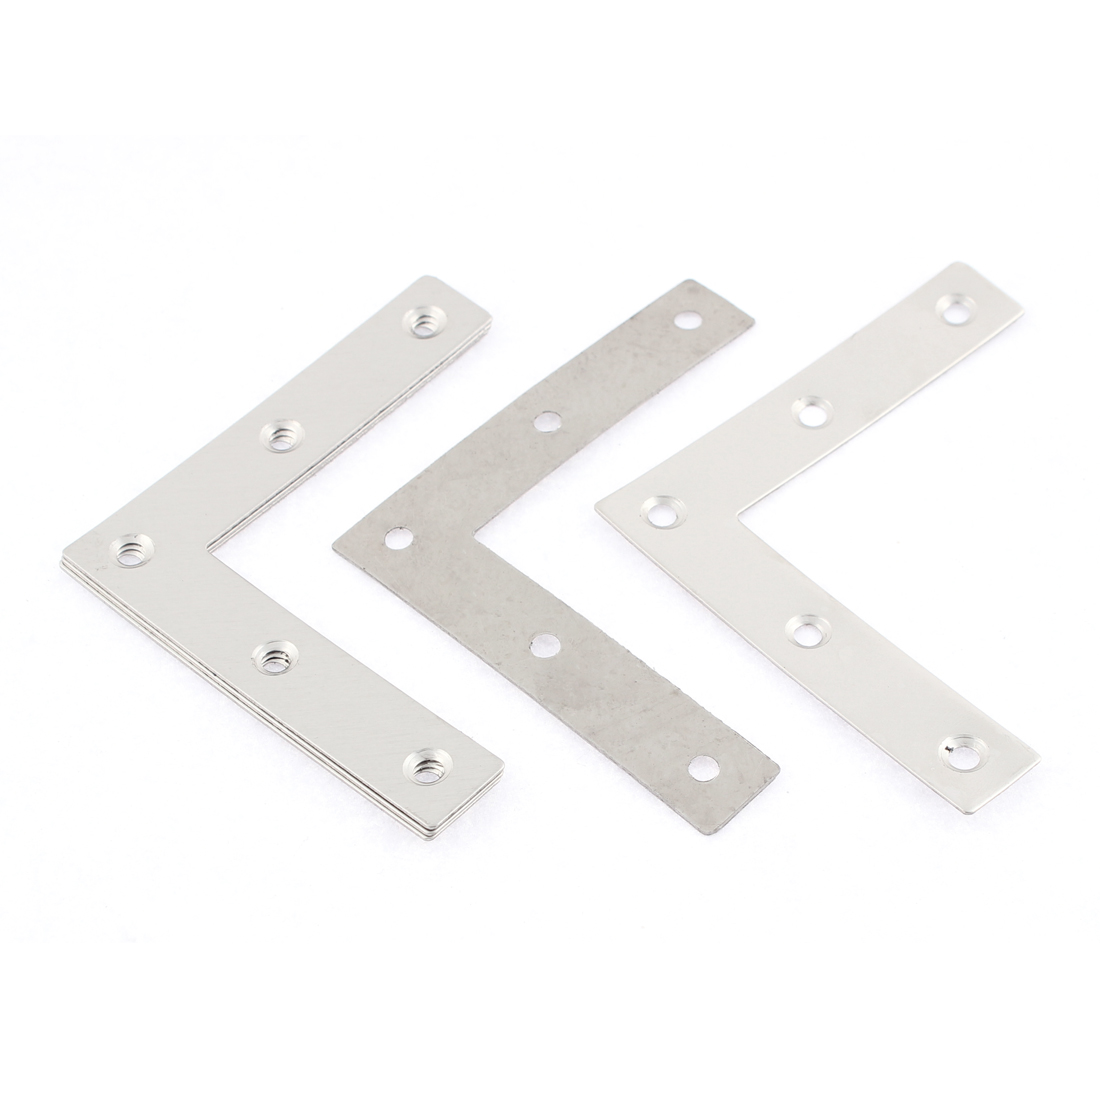 5 Pcs 80mm x 80mm Stainless Steel Flat Corner Brace Fixing Repair Bracket Plates